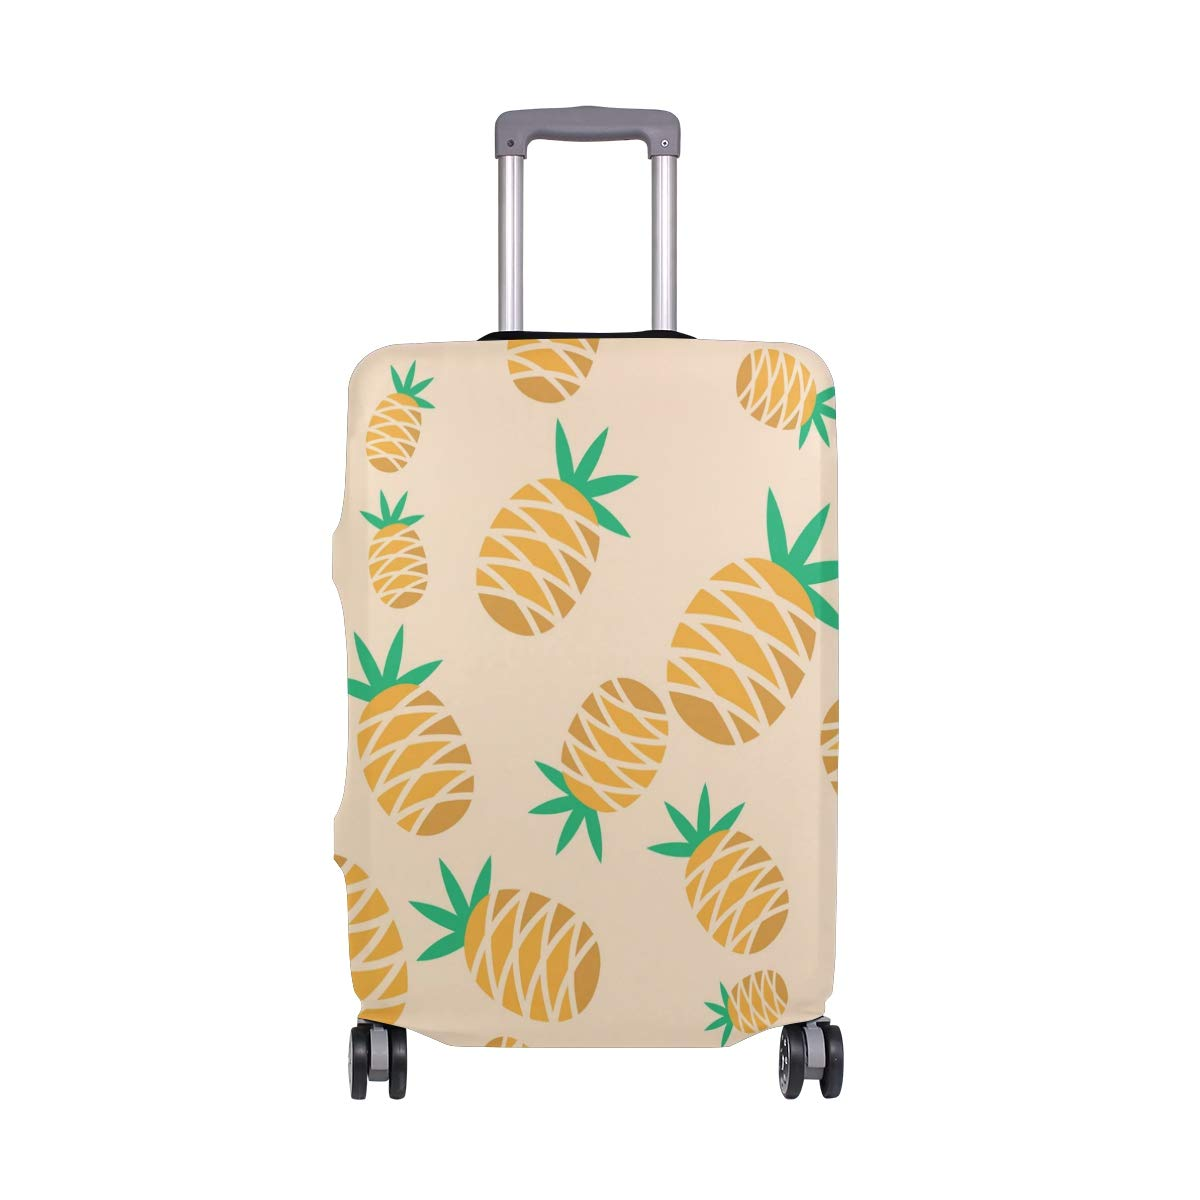 FOLPPLY Summer Pineapple Pattern Luggage Cover Baggage Suitcase Travel Protector Fit for 18-32 Inch